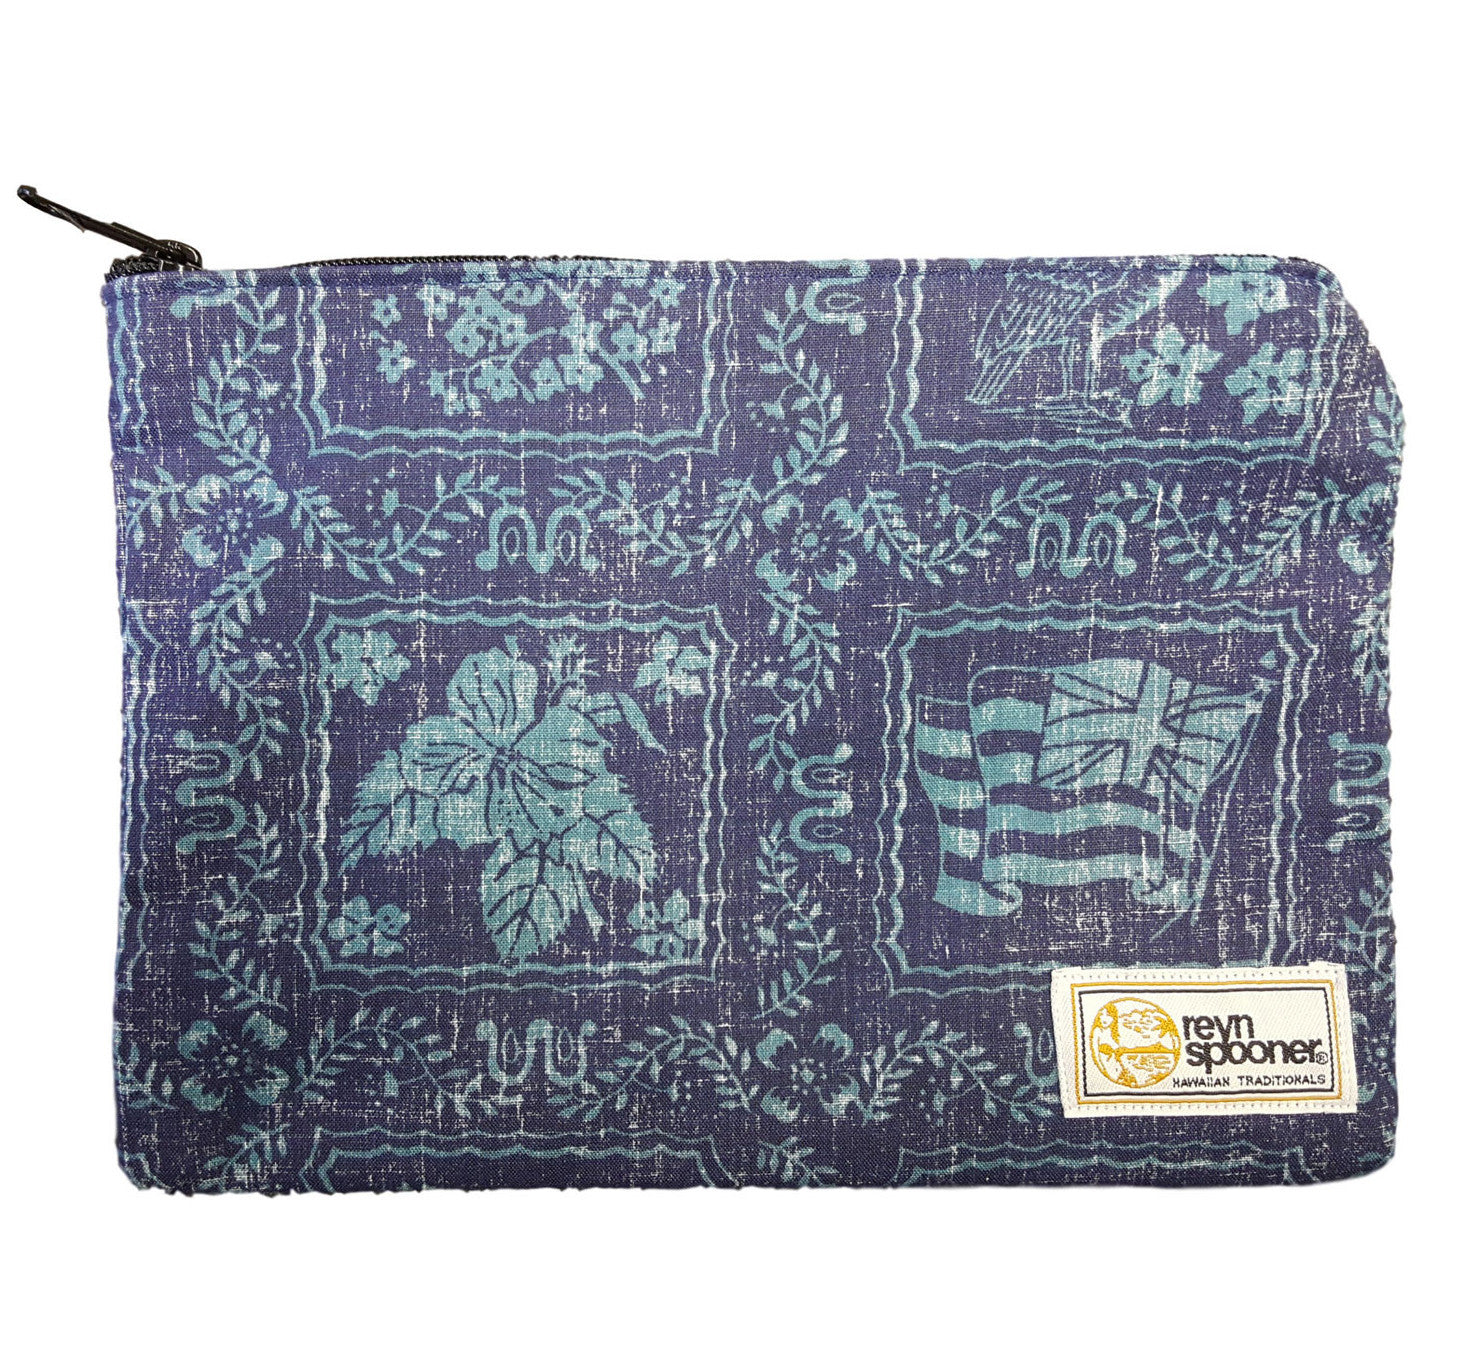 LAHAINA SAILOR / COSMETIC BAG - Zoomed